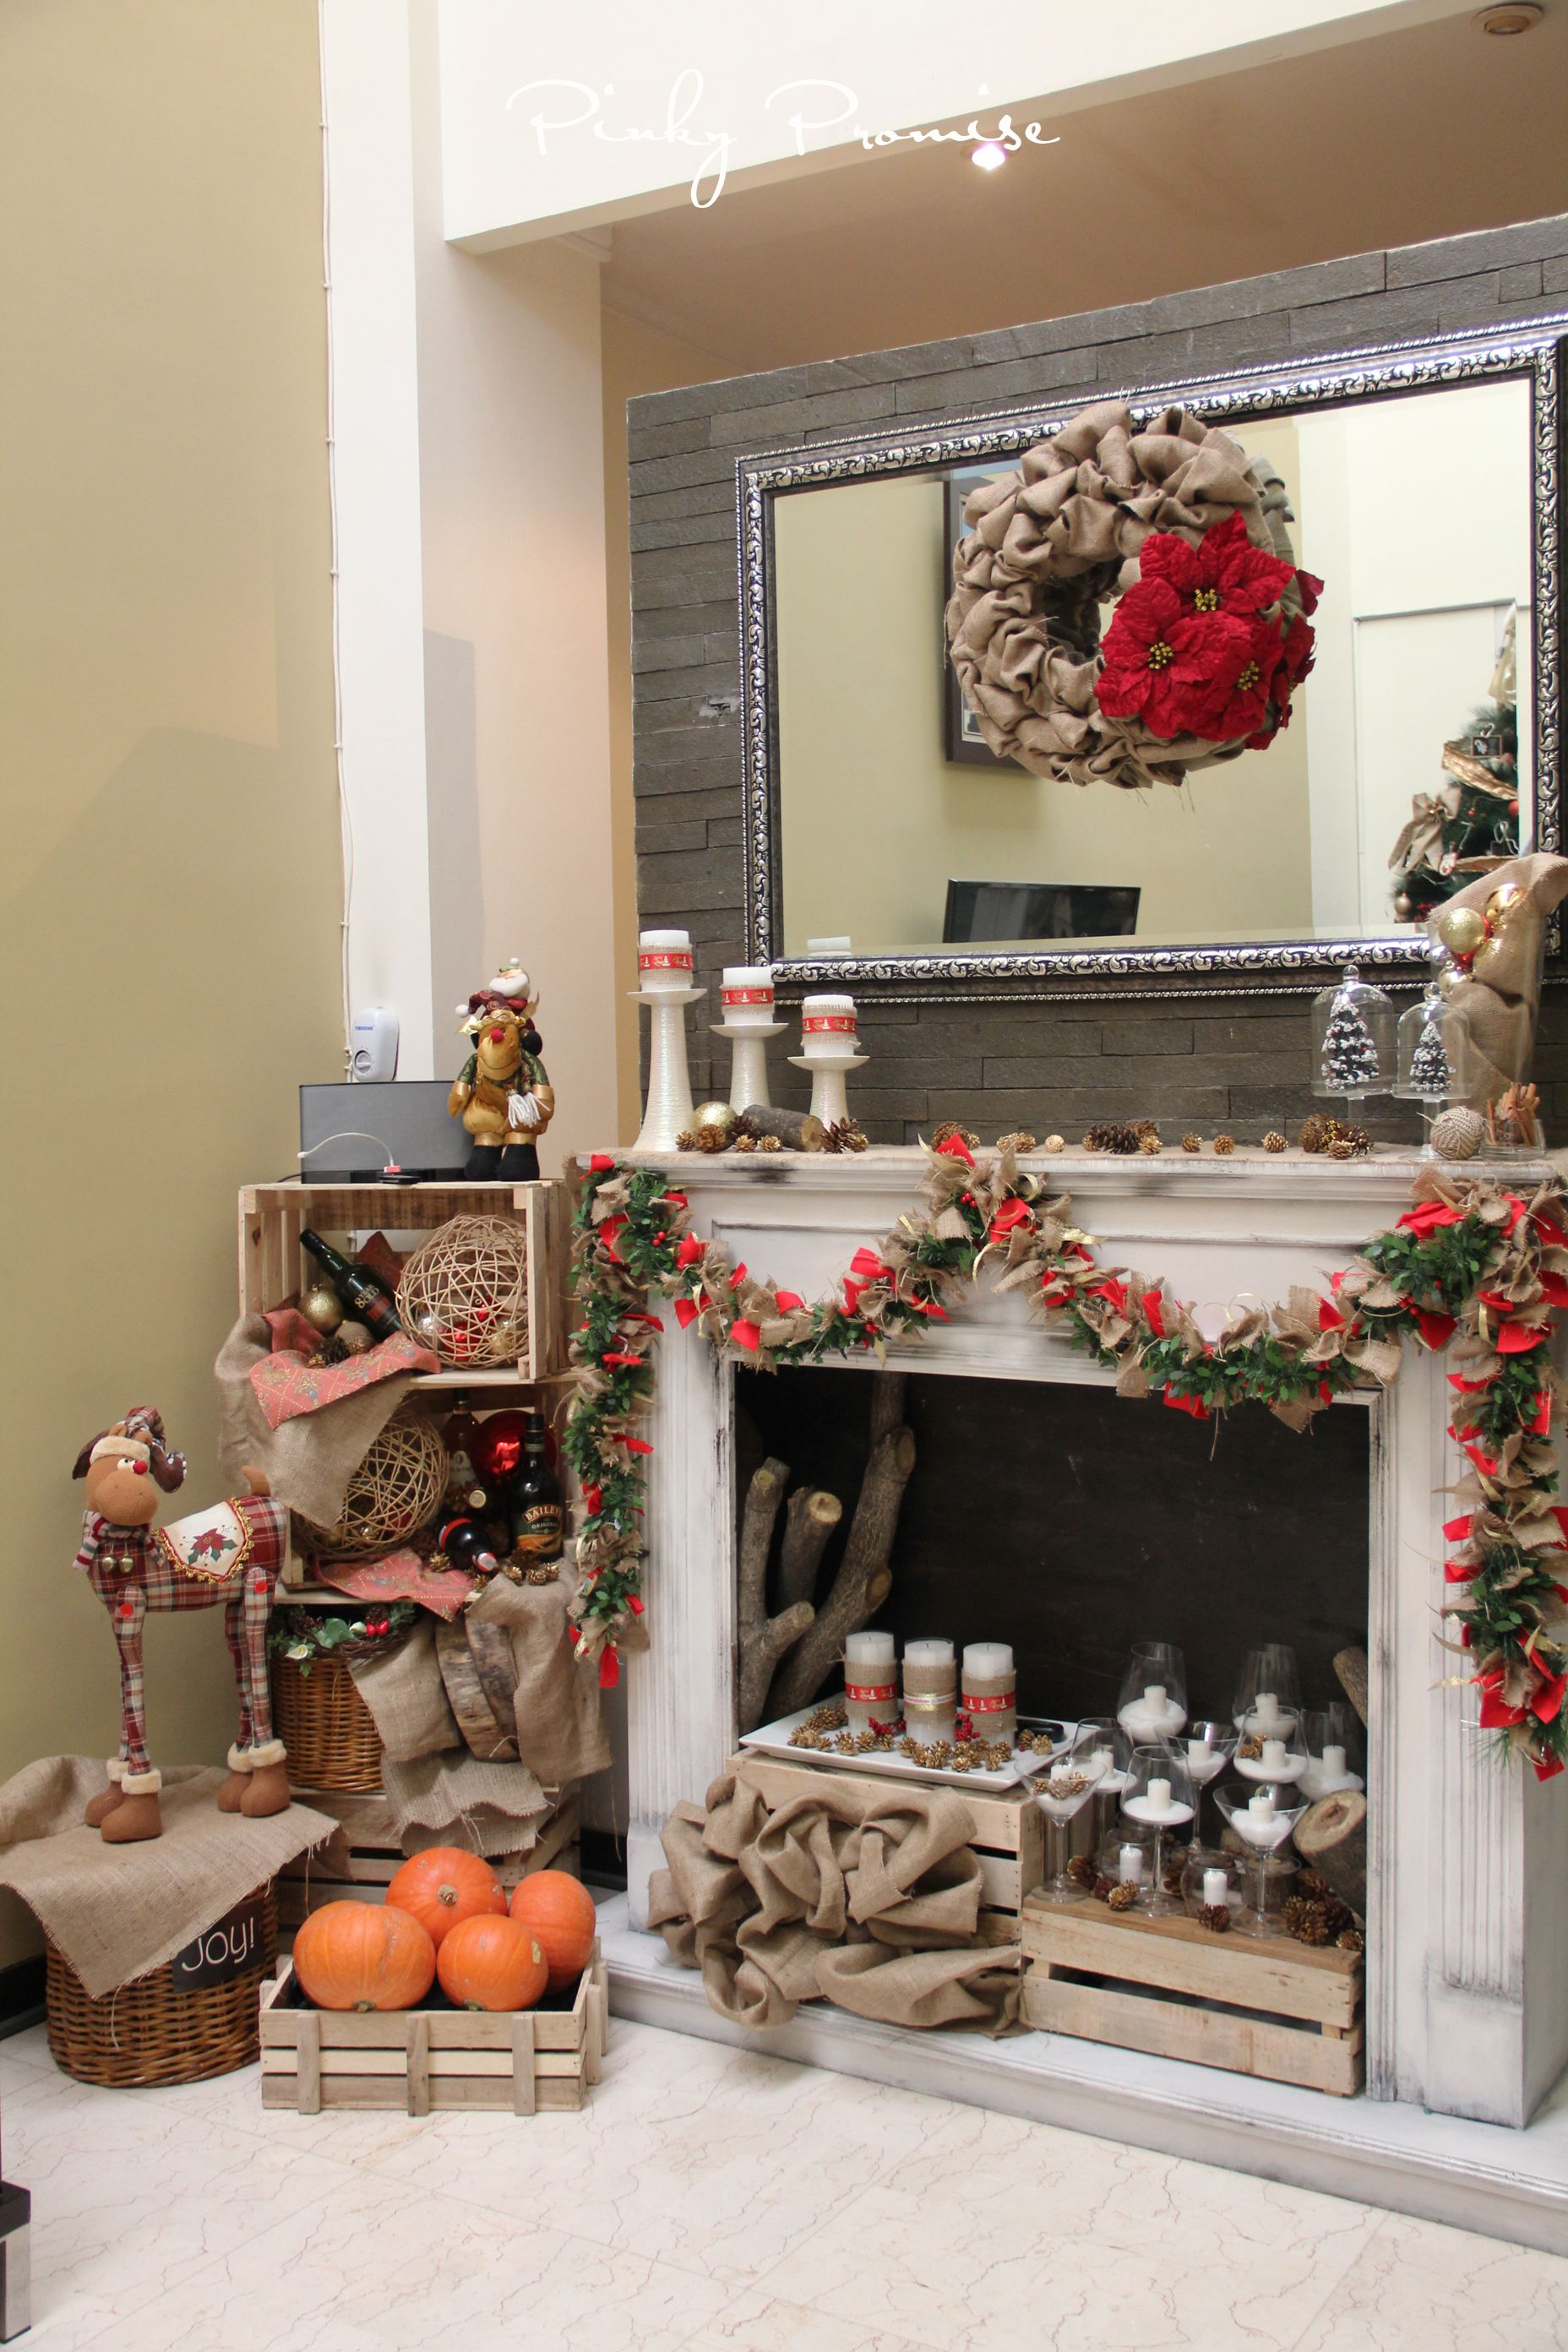 merry christmas #rustic #holidays #christmas #pinecones #fireplace #burlap #reindeer